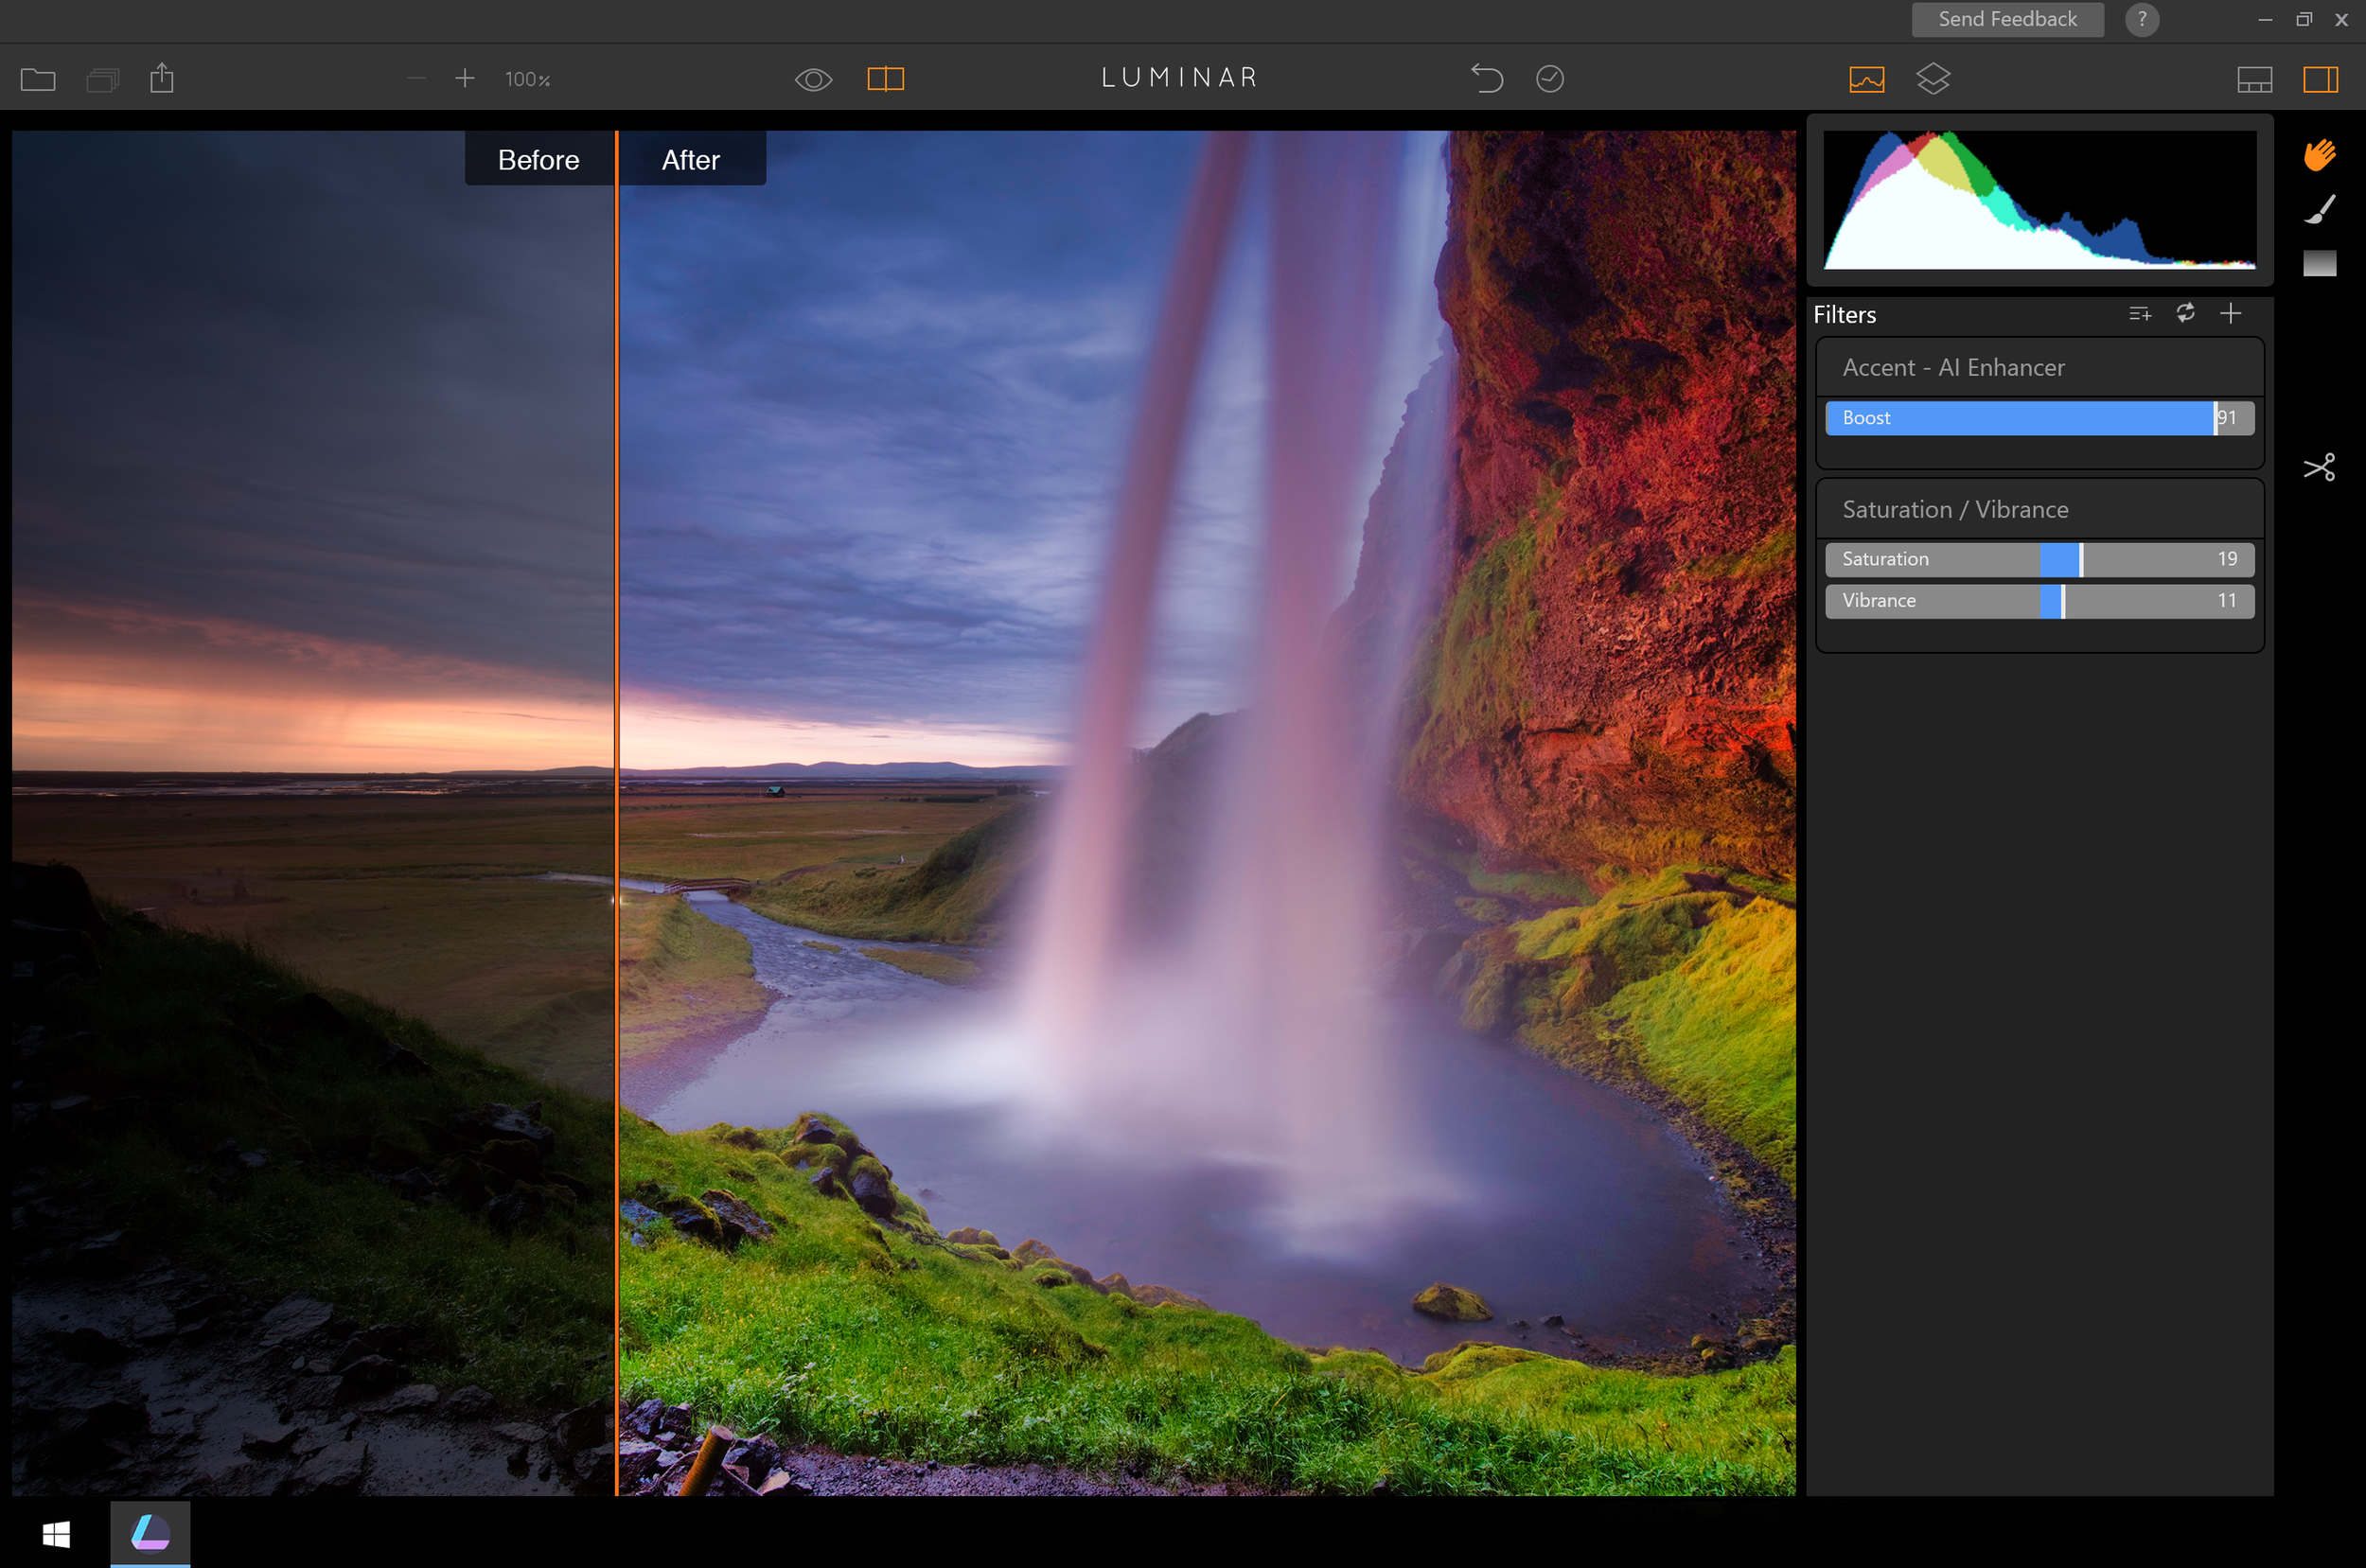 The Accent AI filter uses a single slider to adjust shadows, contrast, highlights, exposure, details and more.